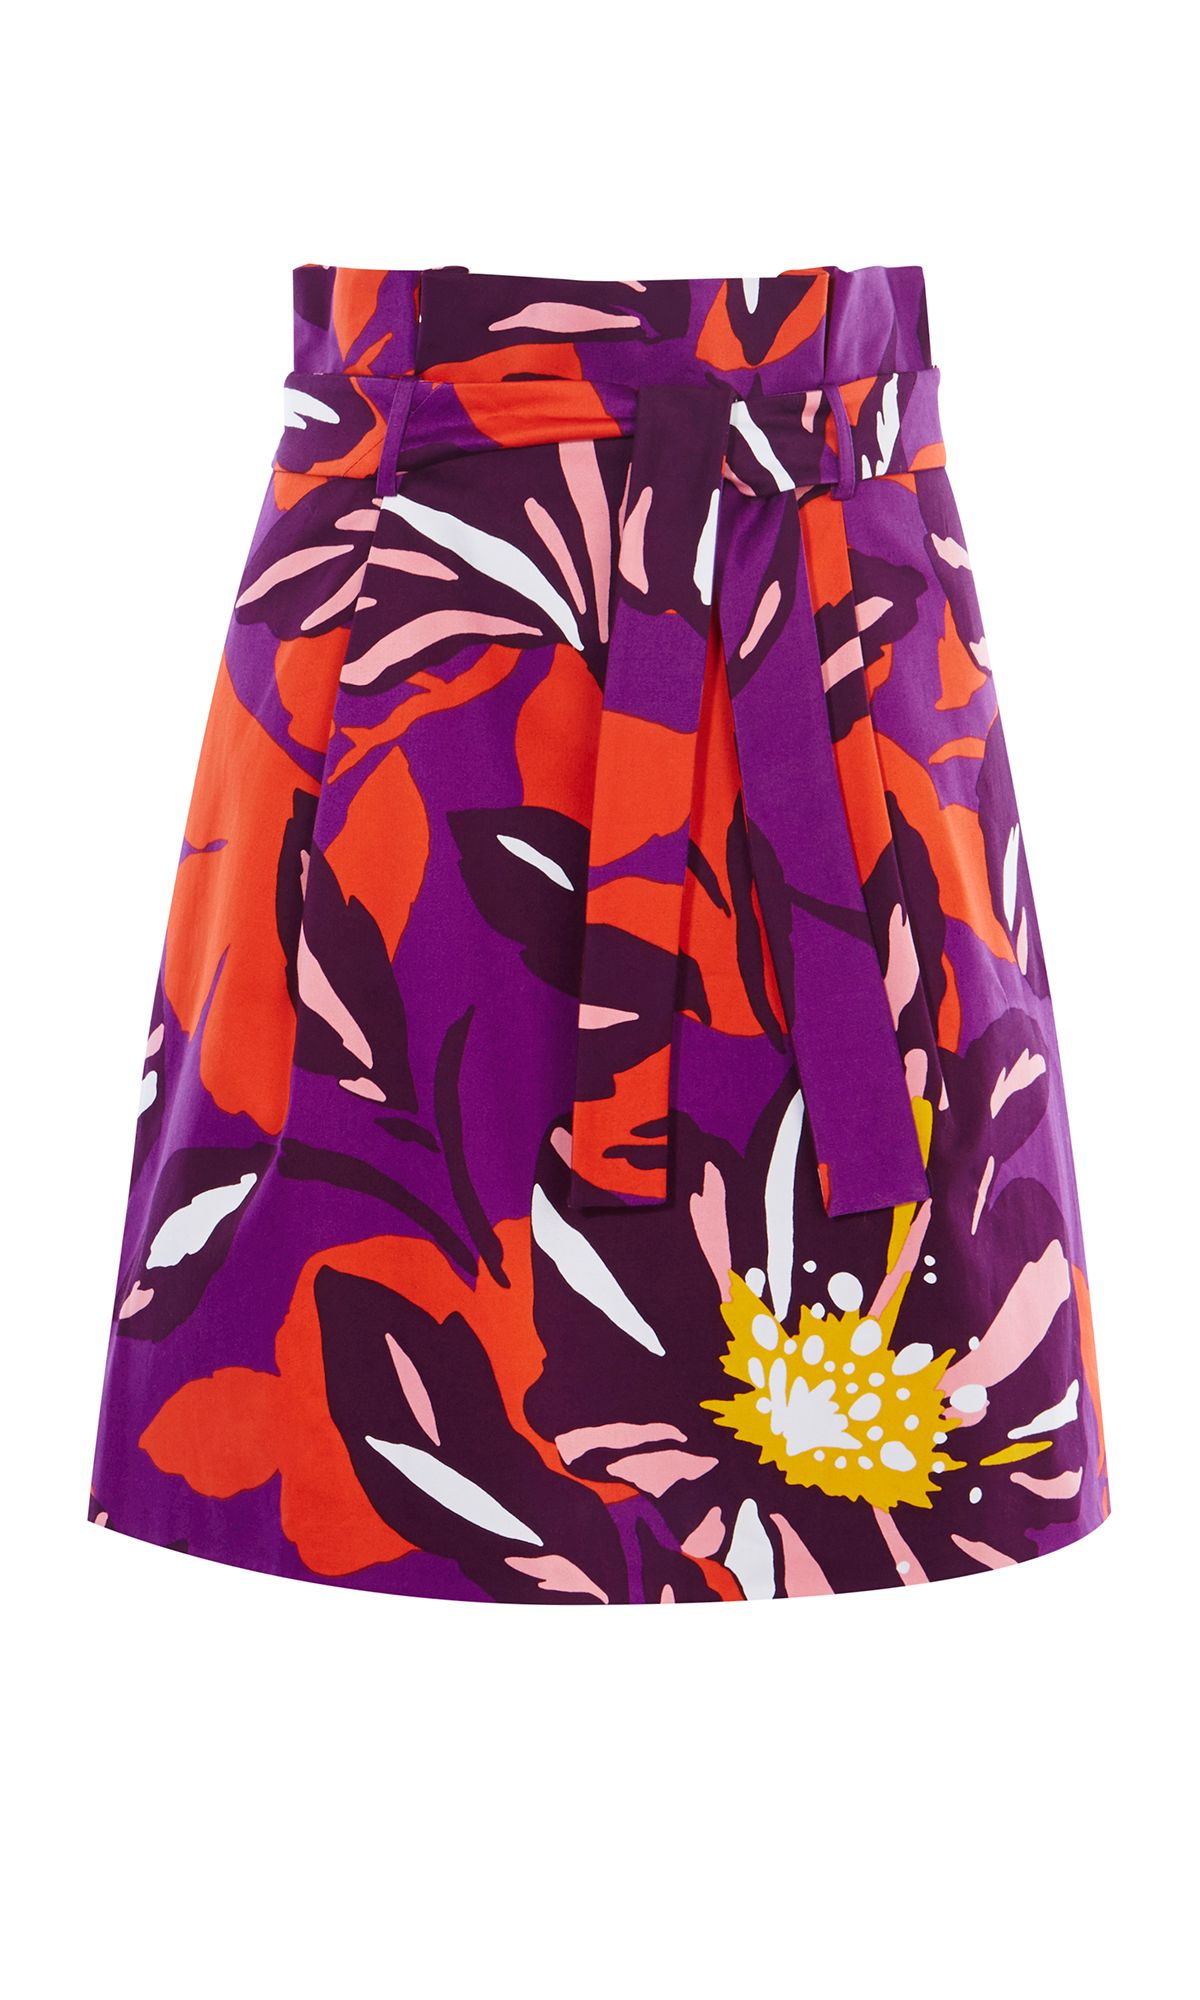 Karen Millen Floral Cotton Full Skirt, Multi-Coloured